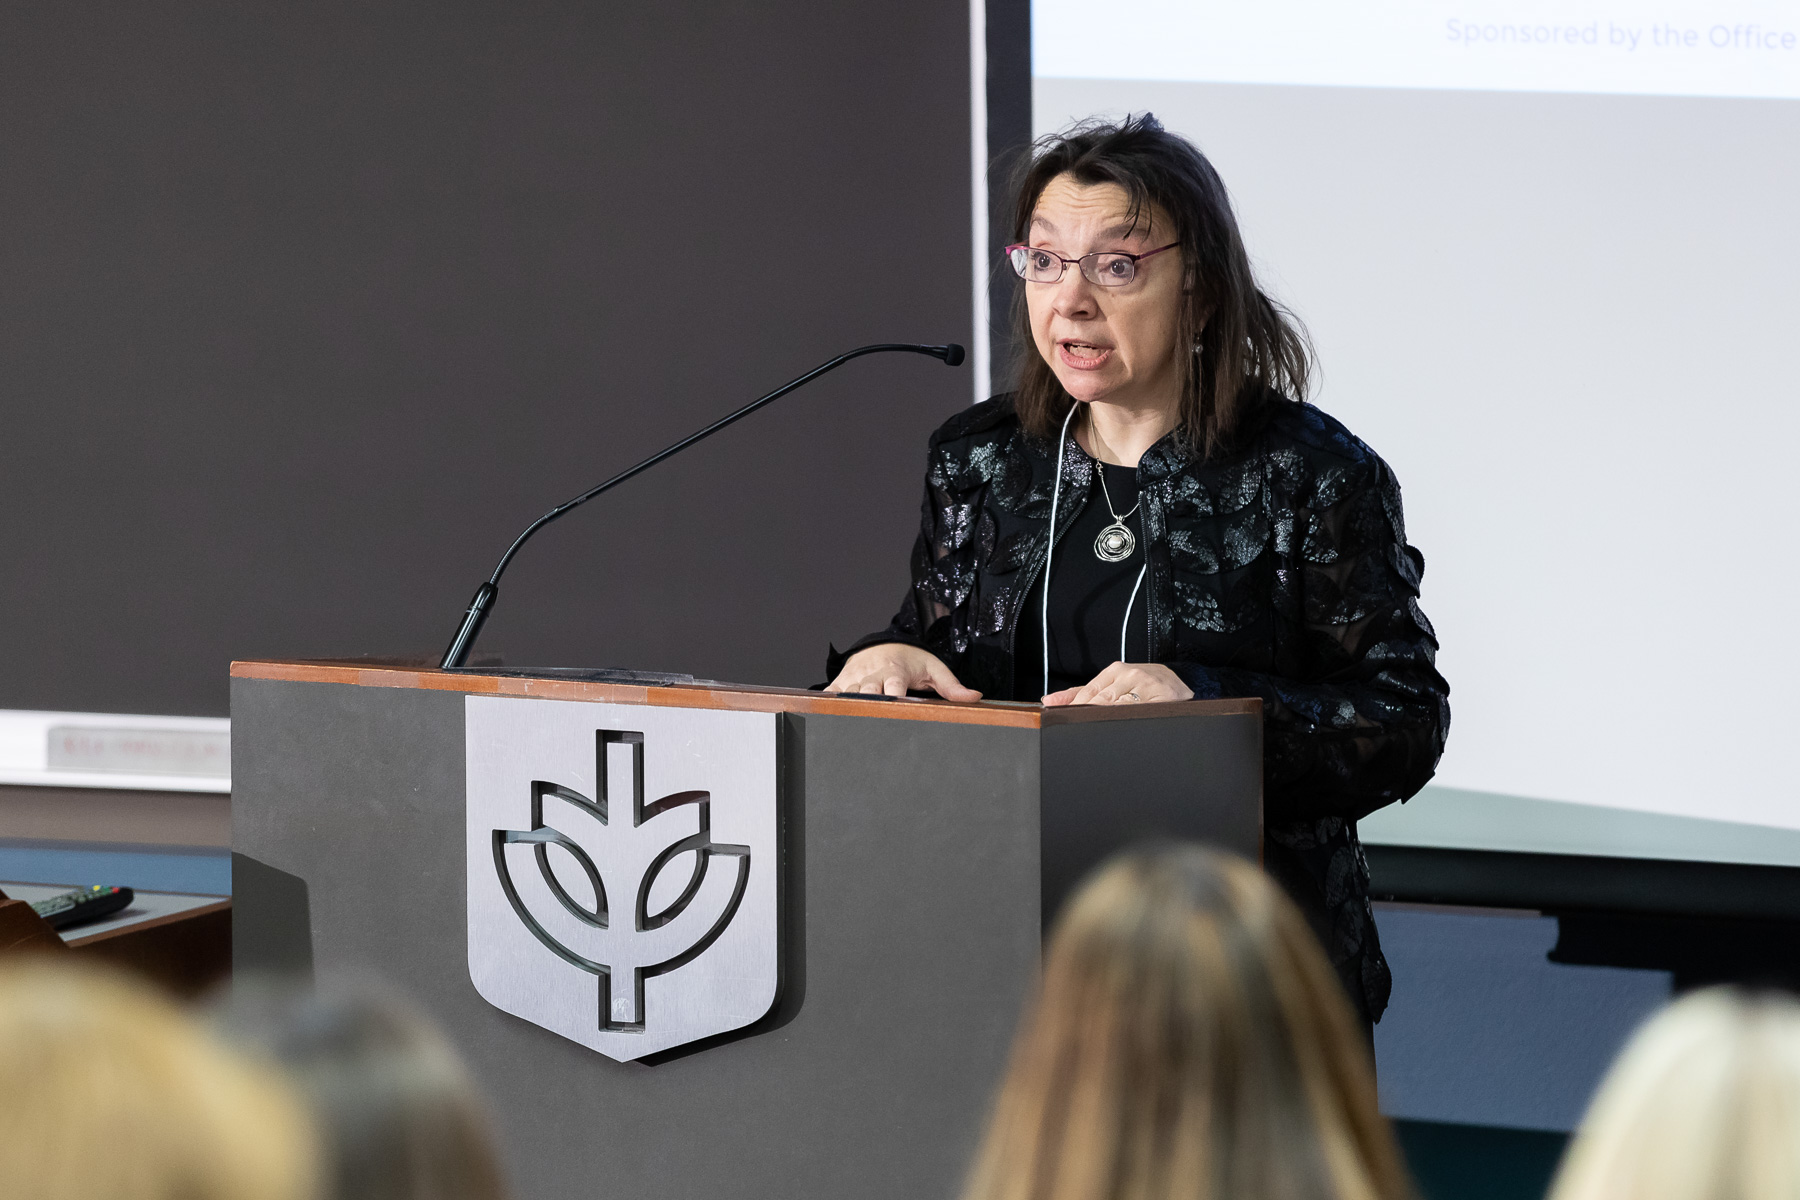 Daniela Stan Raicu, professor and associate provost for research and member of the organizing committee, also made remarks welcoming attendees. Innovation Day was focused on featuring Academic Growth and Innovation Fund (AGIF) projects. (DePaul University/Jeff Carrion)